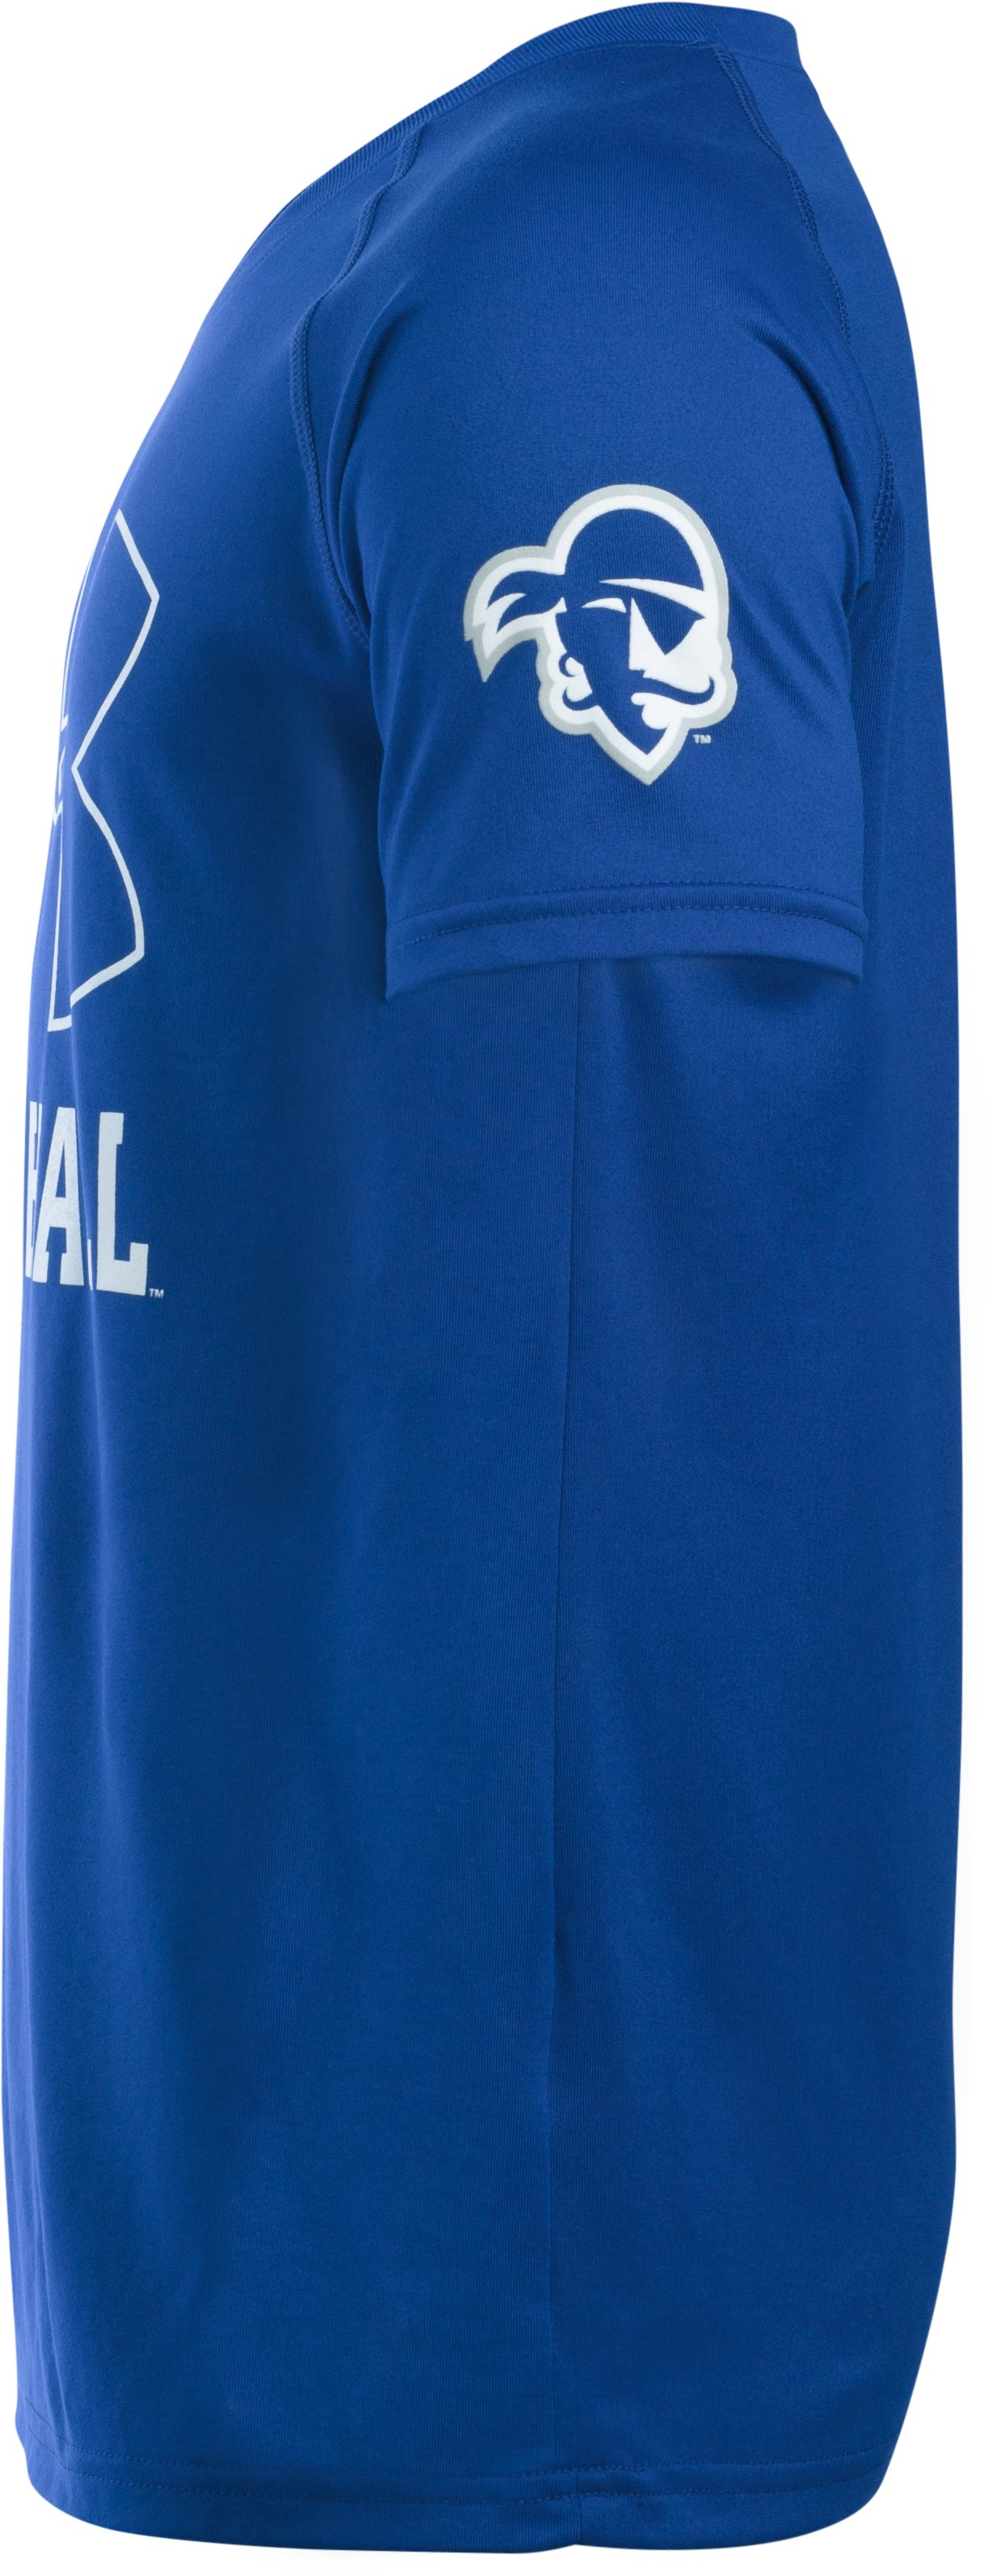 Boys' Seton Hall UA Tech™ T-Shirt, Royal,